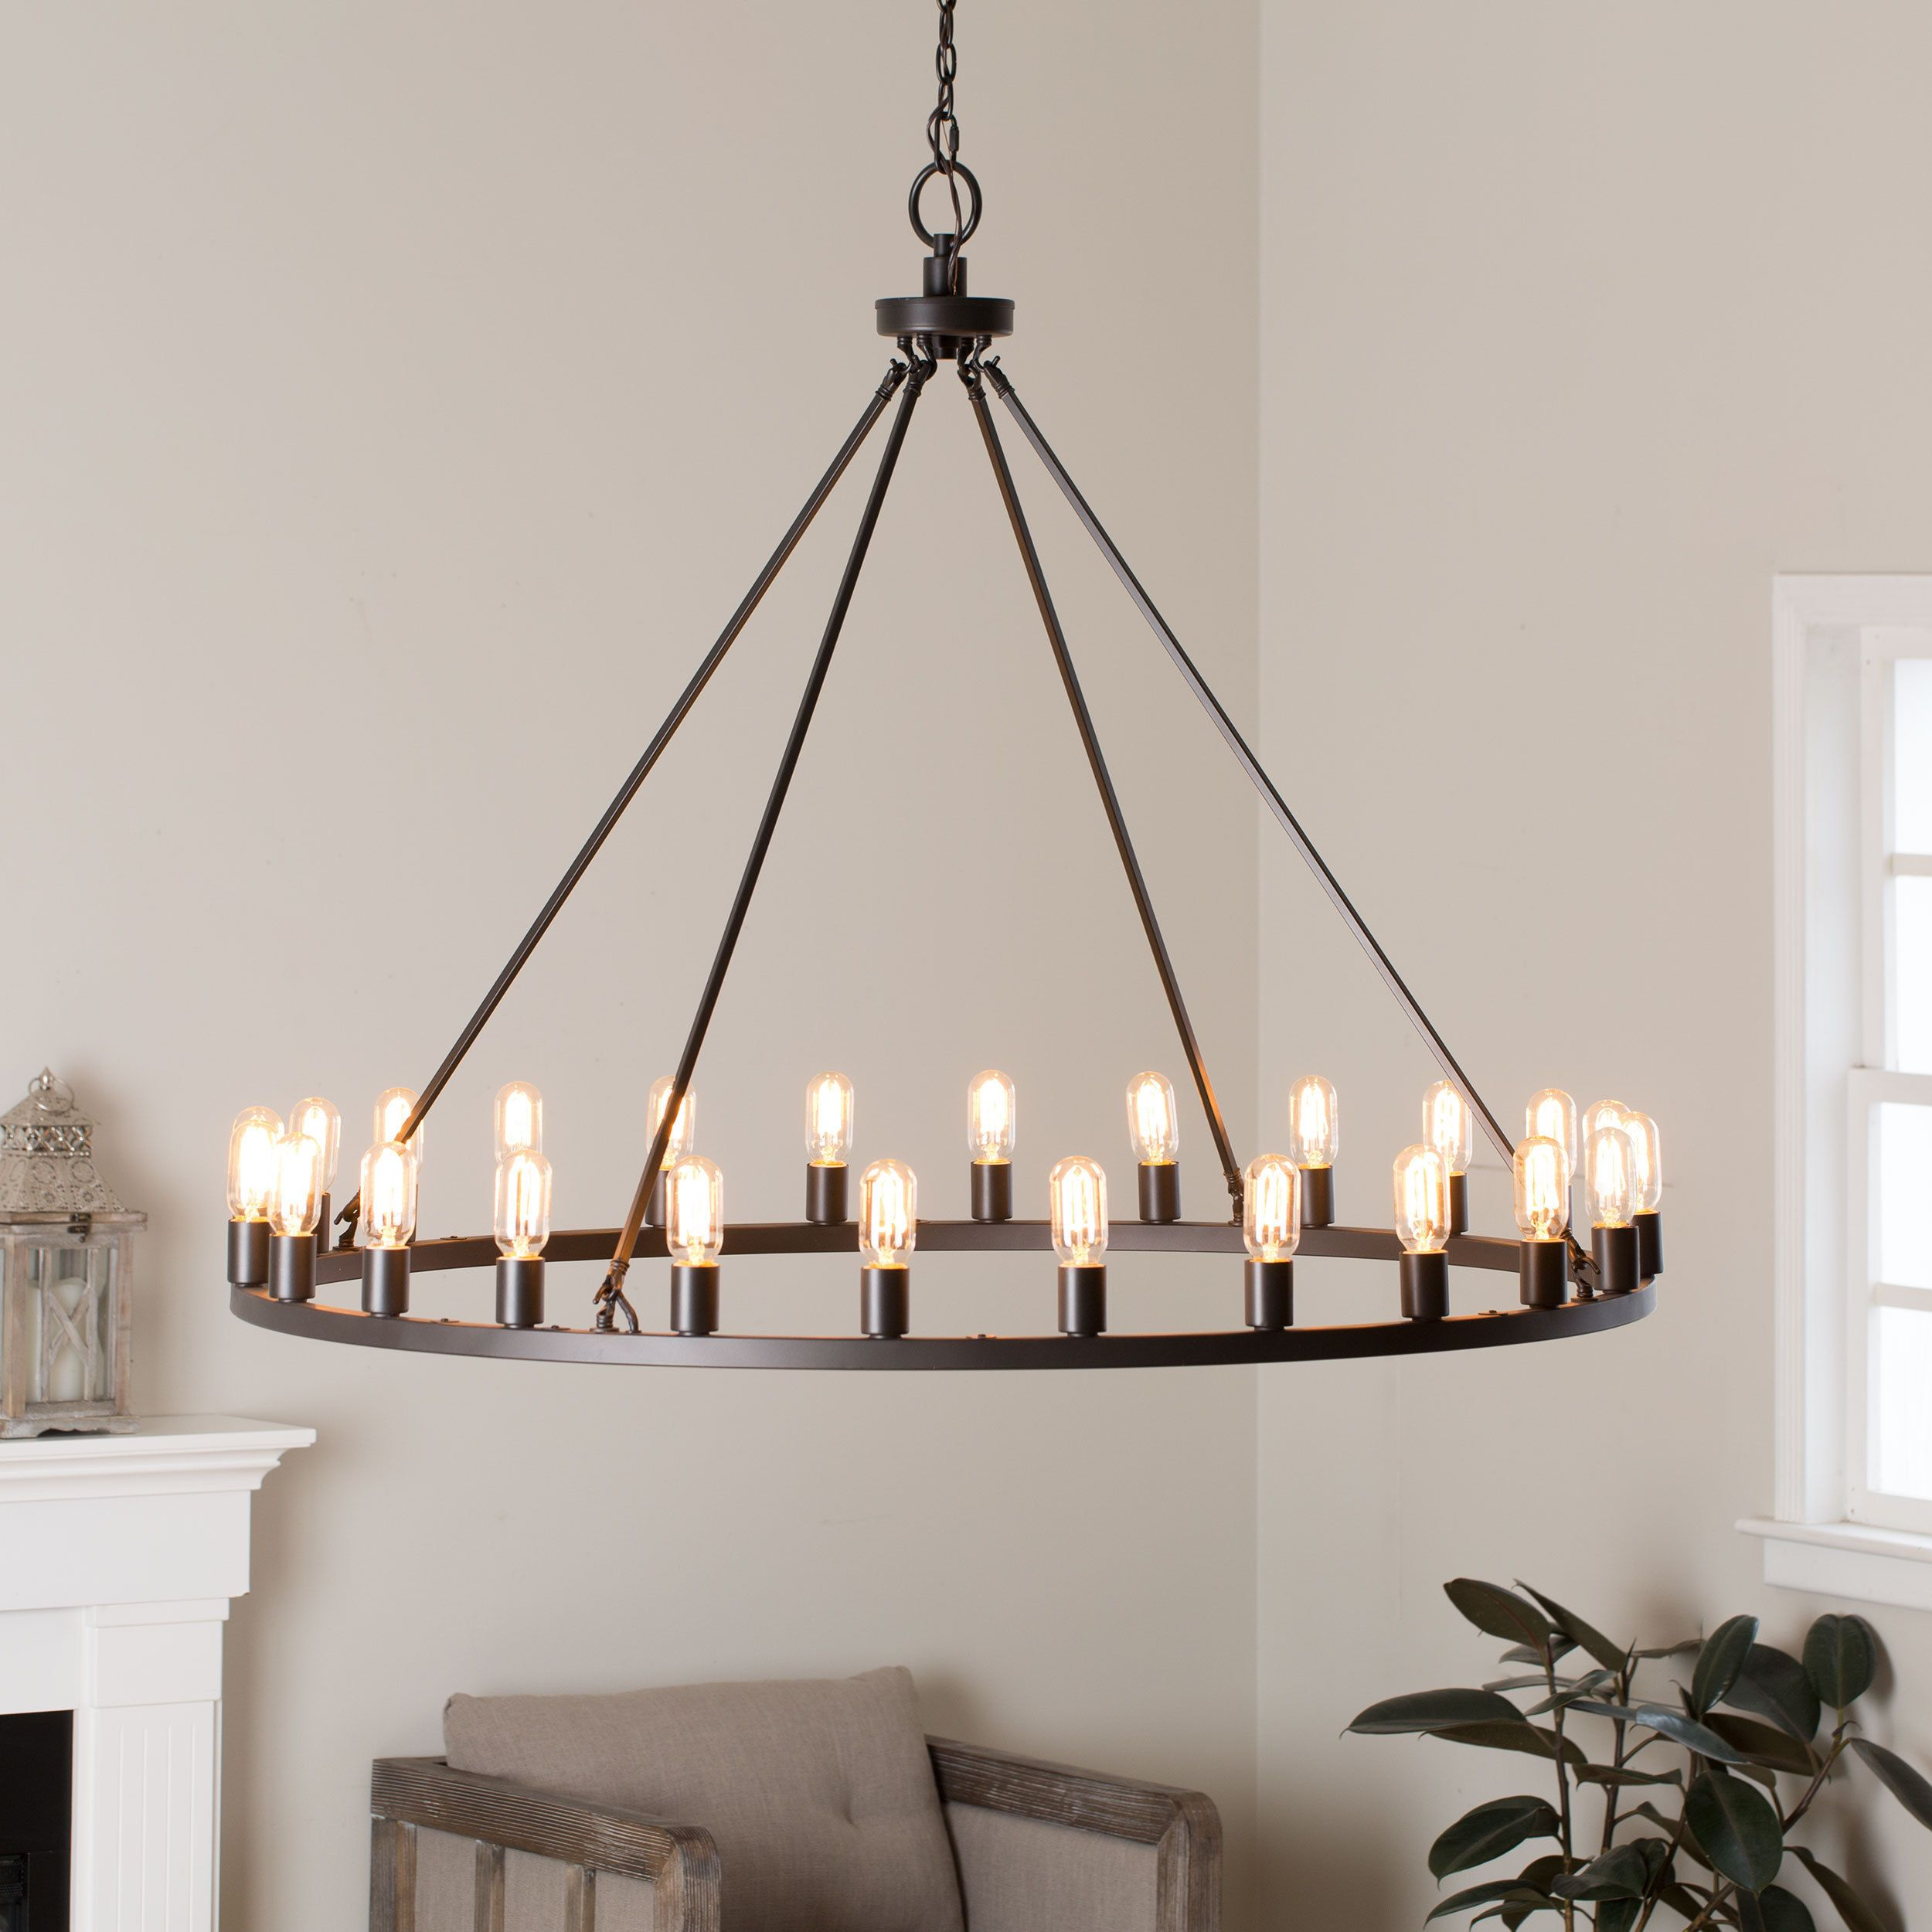 Emblazoned with 24 decorative Edison light bulbs this